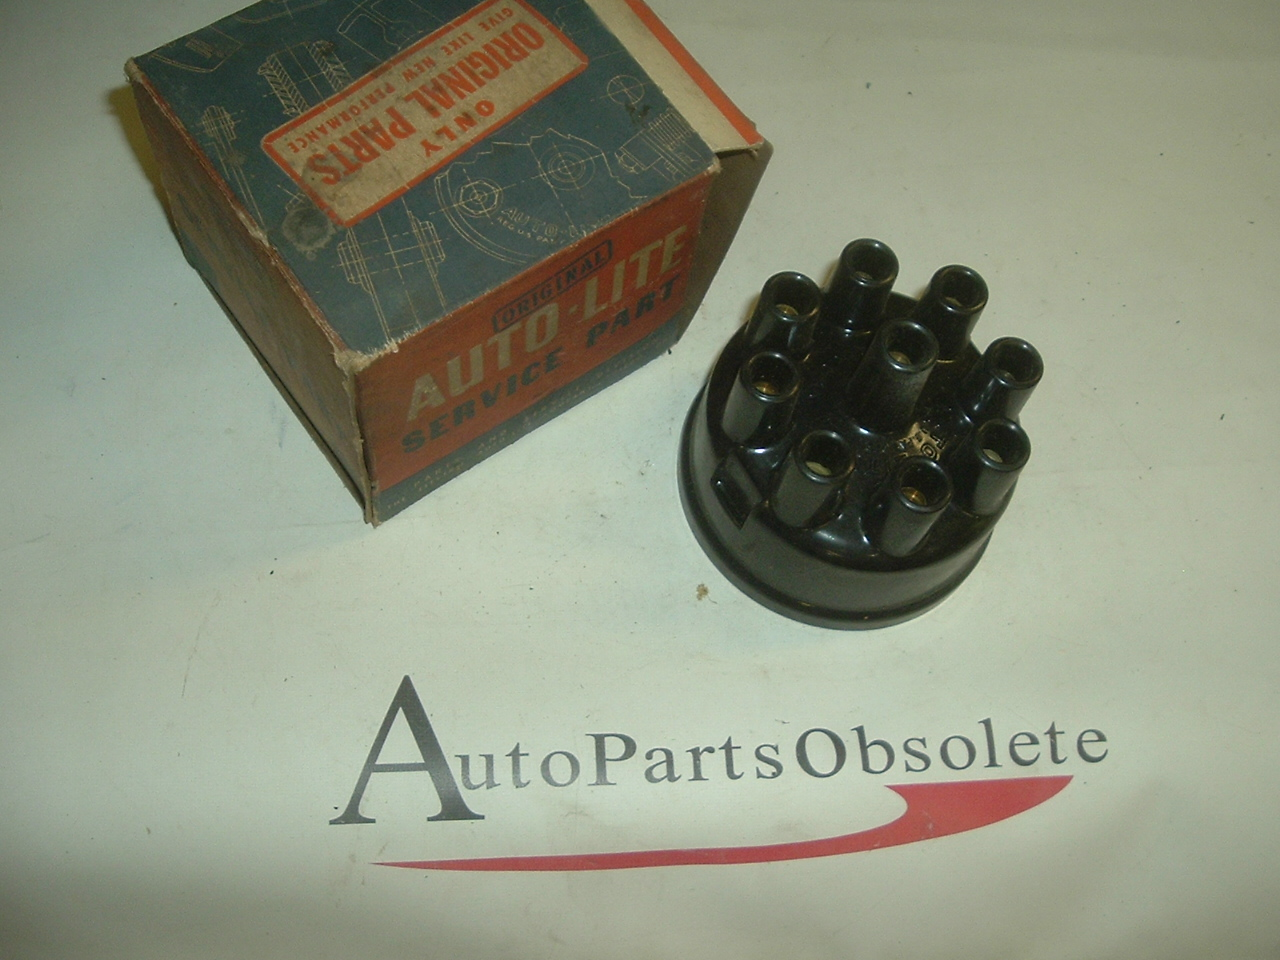 1938 - 1948 Chrysler 38 - 1951 Packard 1942 Nash Auto Lite Distributor Cap NOS (a 1gp1003)